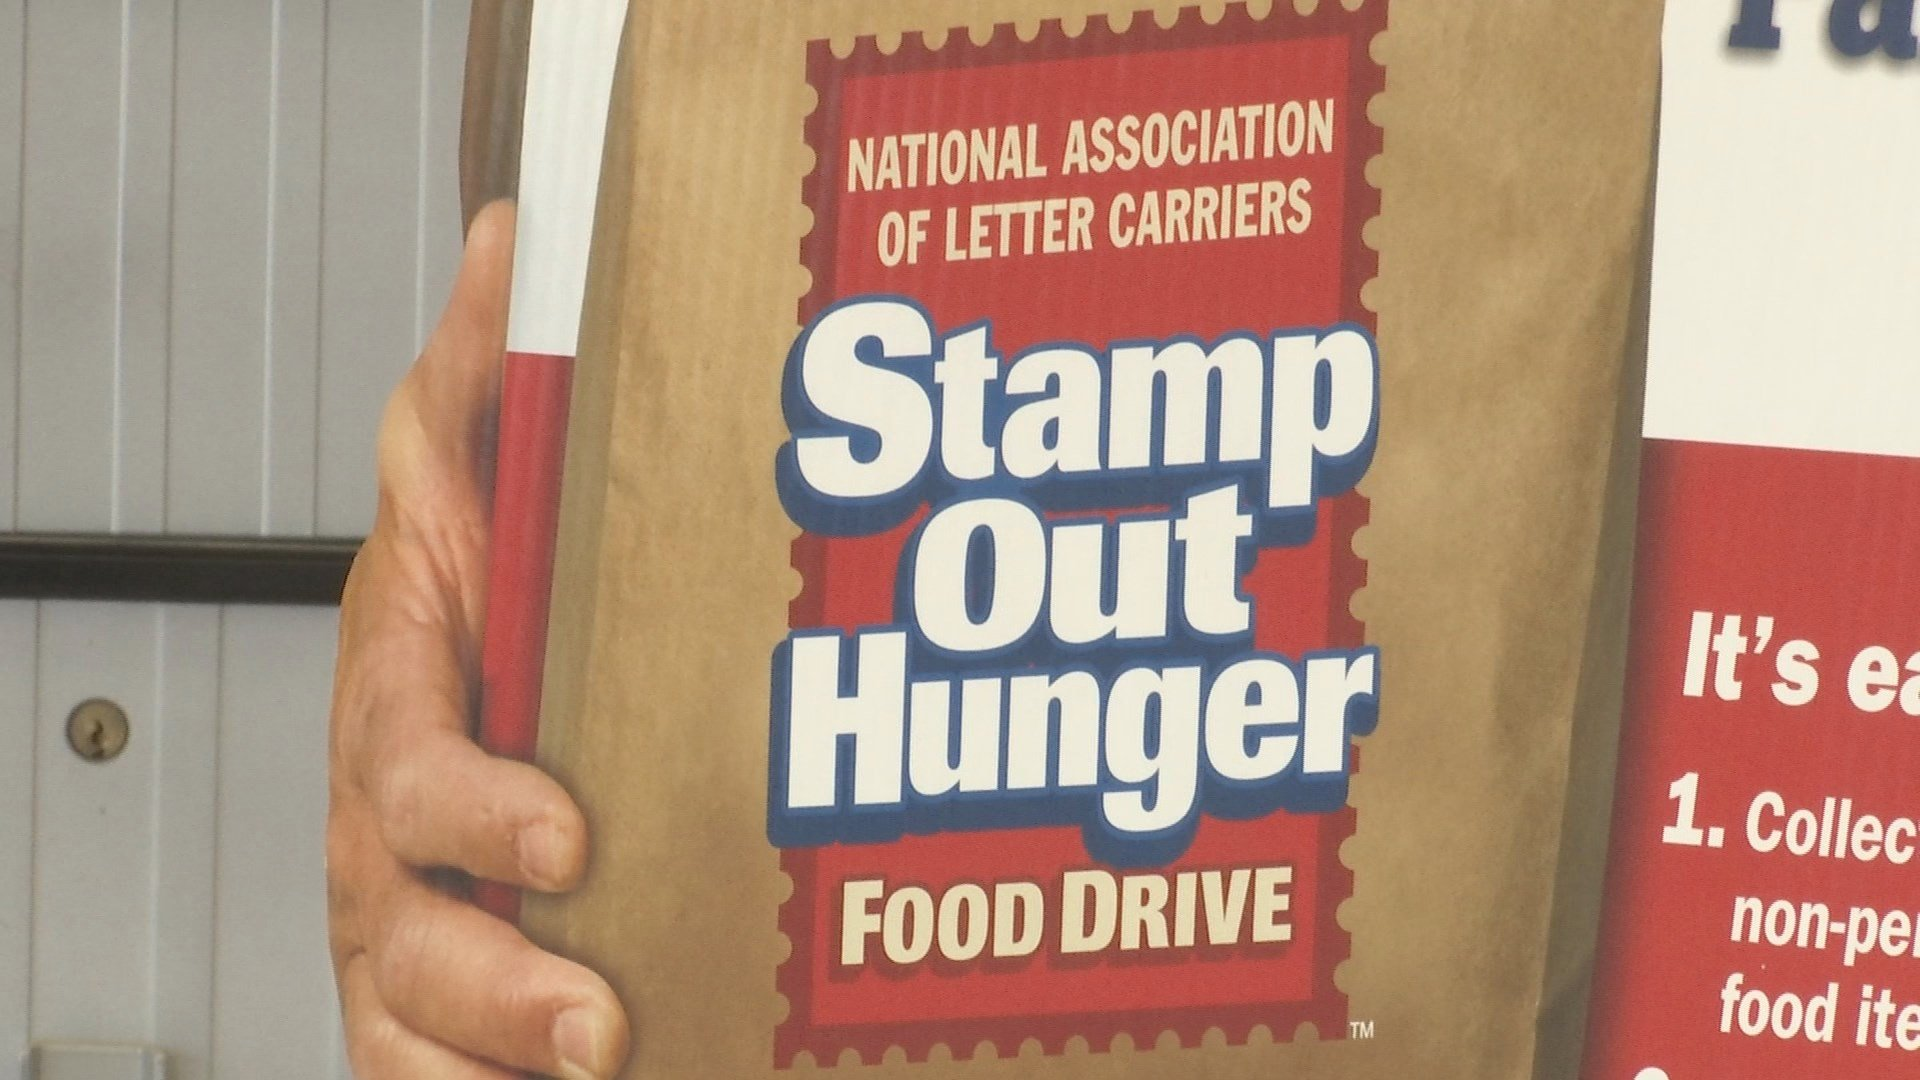 Second Harvest, mail carriers work to Stamp Out Hunger